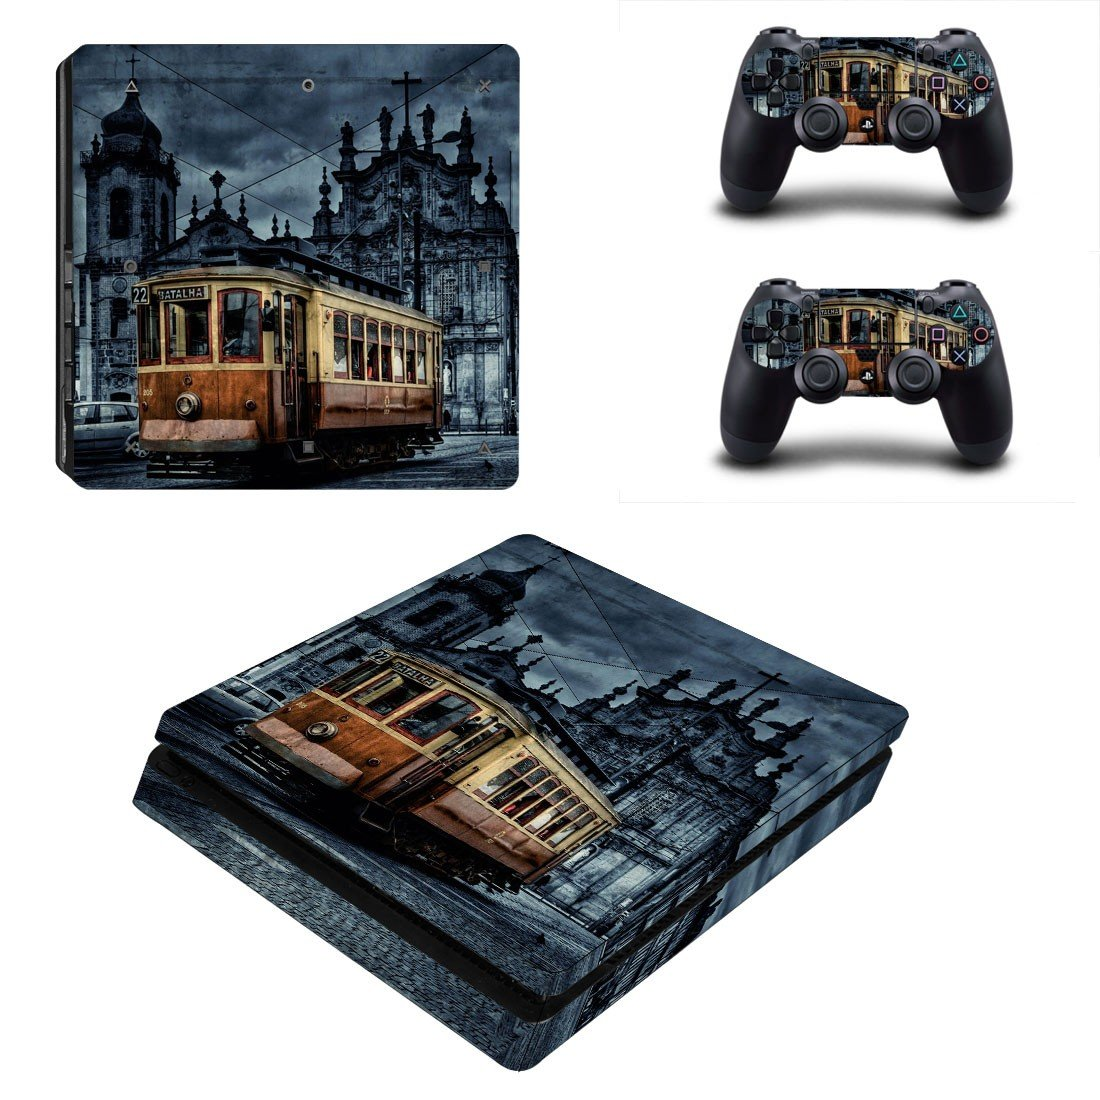 Tram wallpaper ps4 slim skin decal for console and controllers